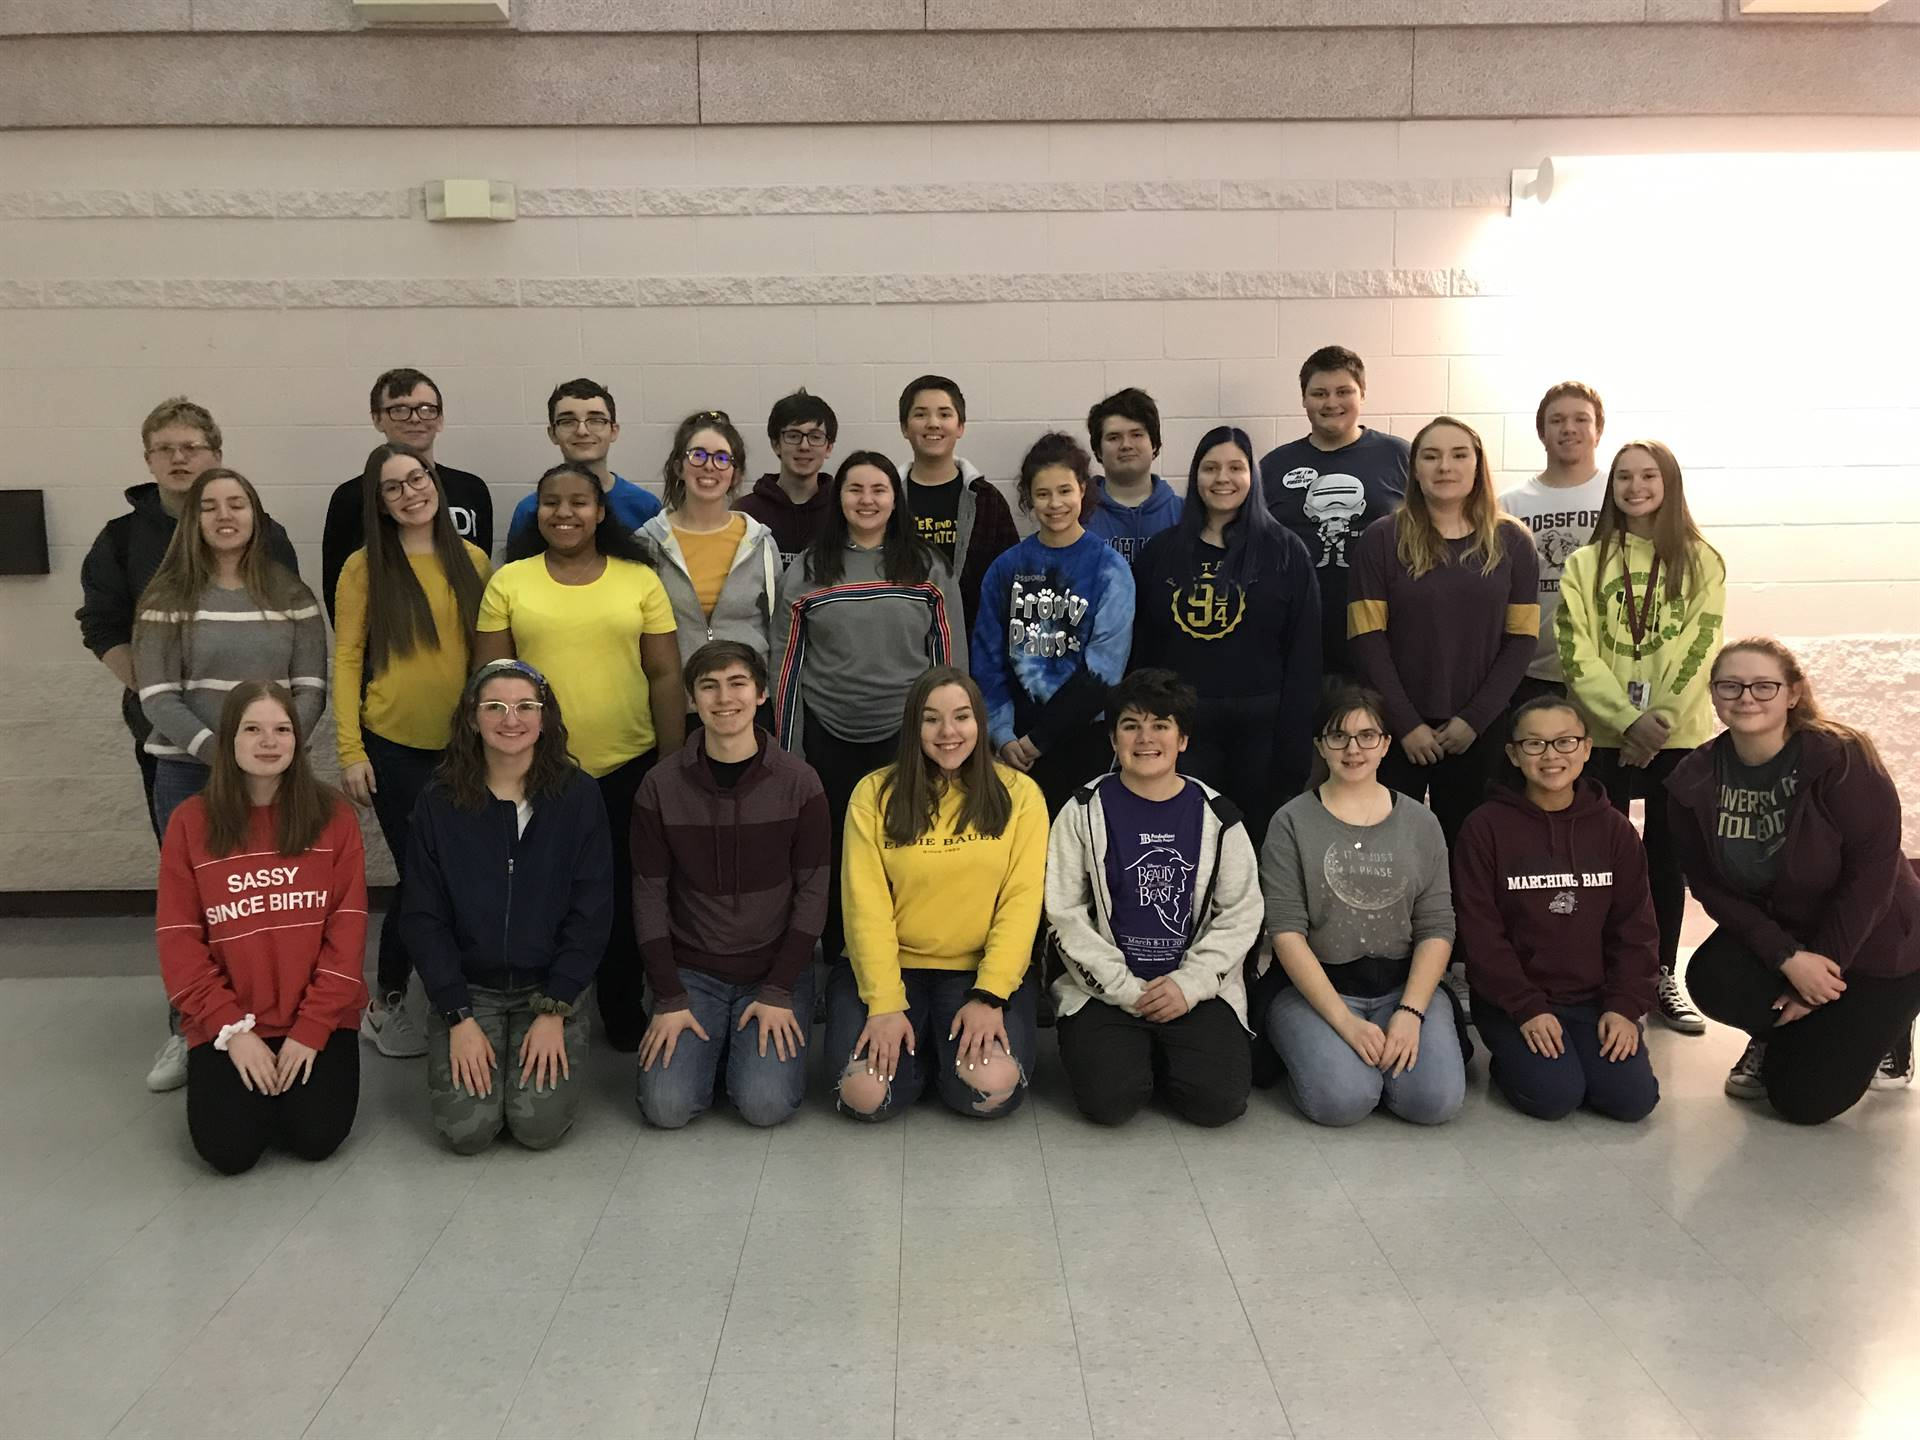 Group shot of the cast for the spring musical